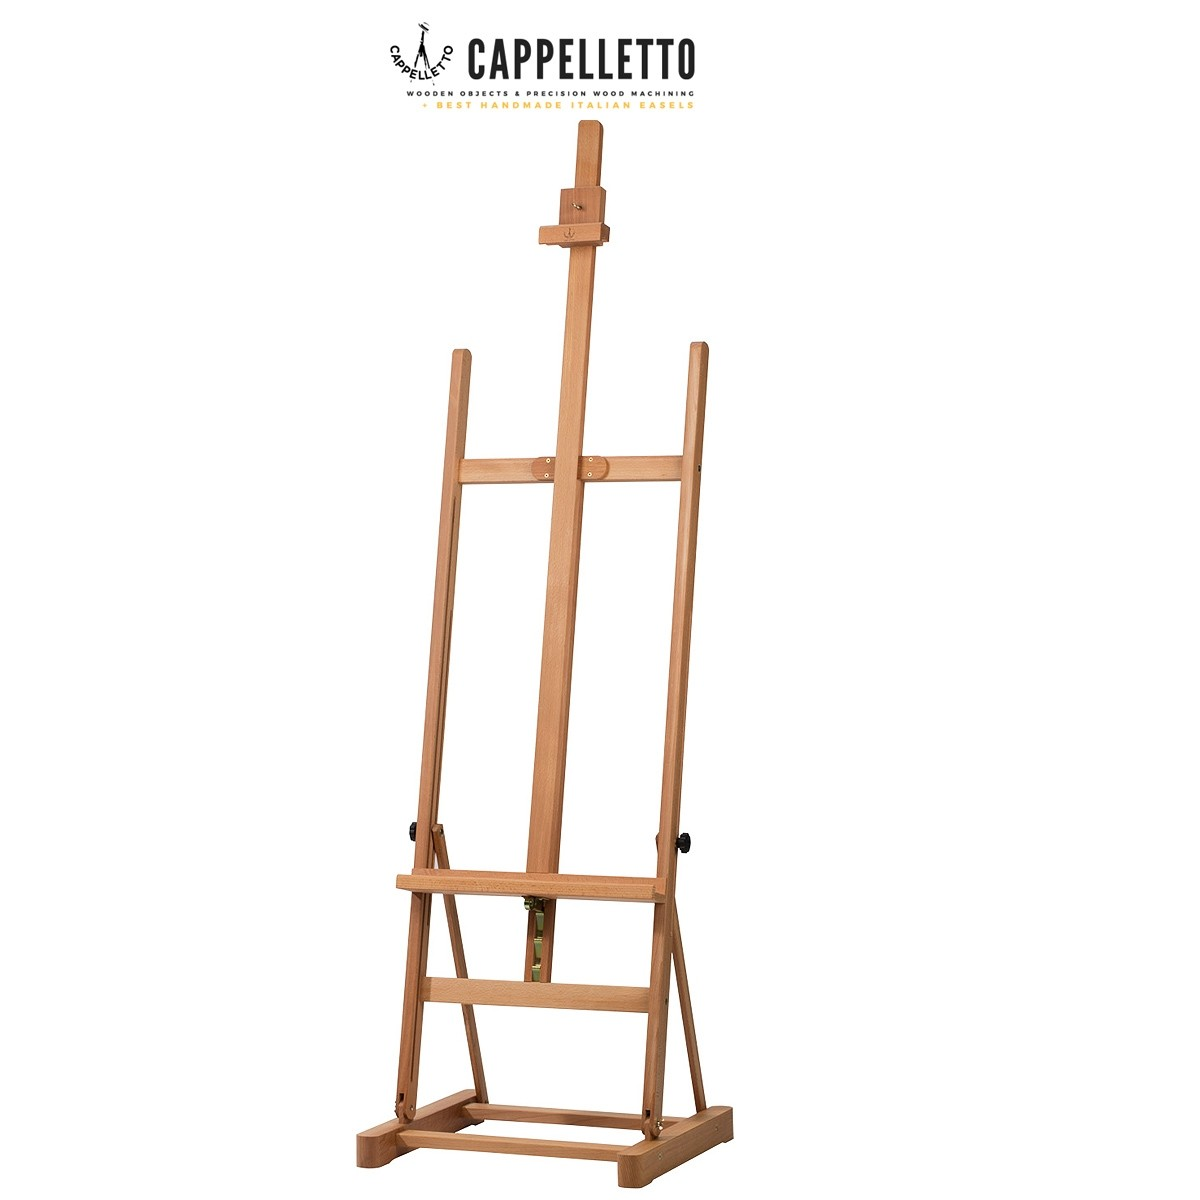 Cappelletto angelica quality beechwood studio h-frame easel